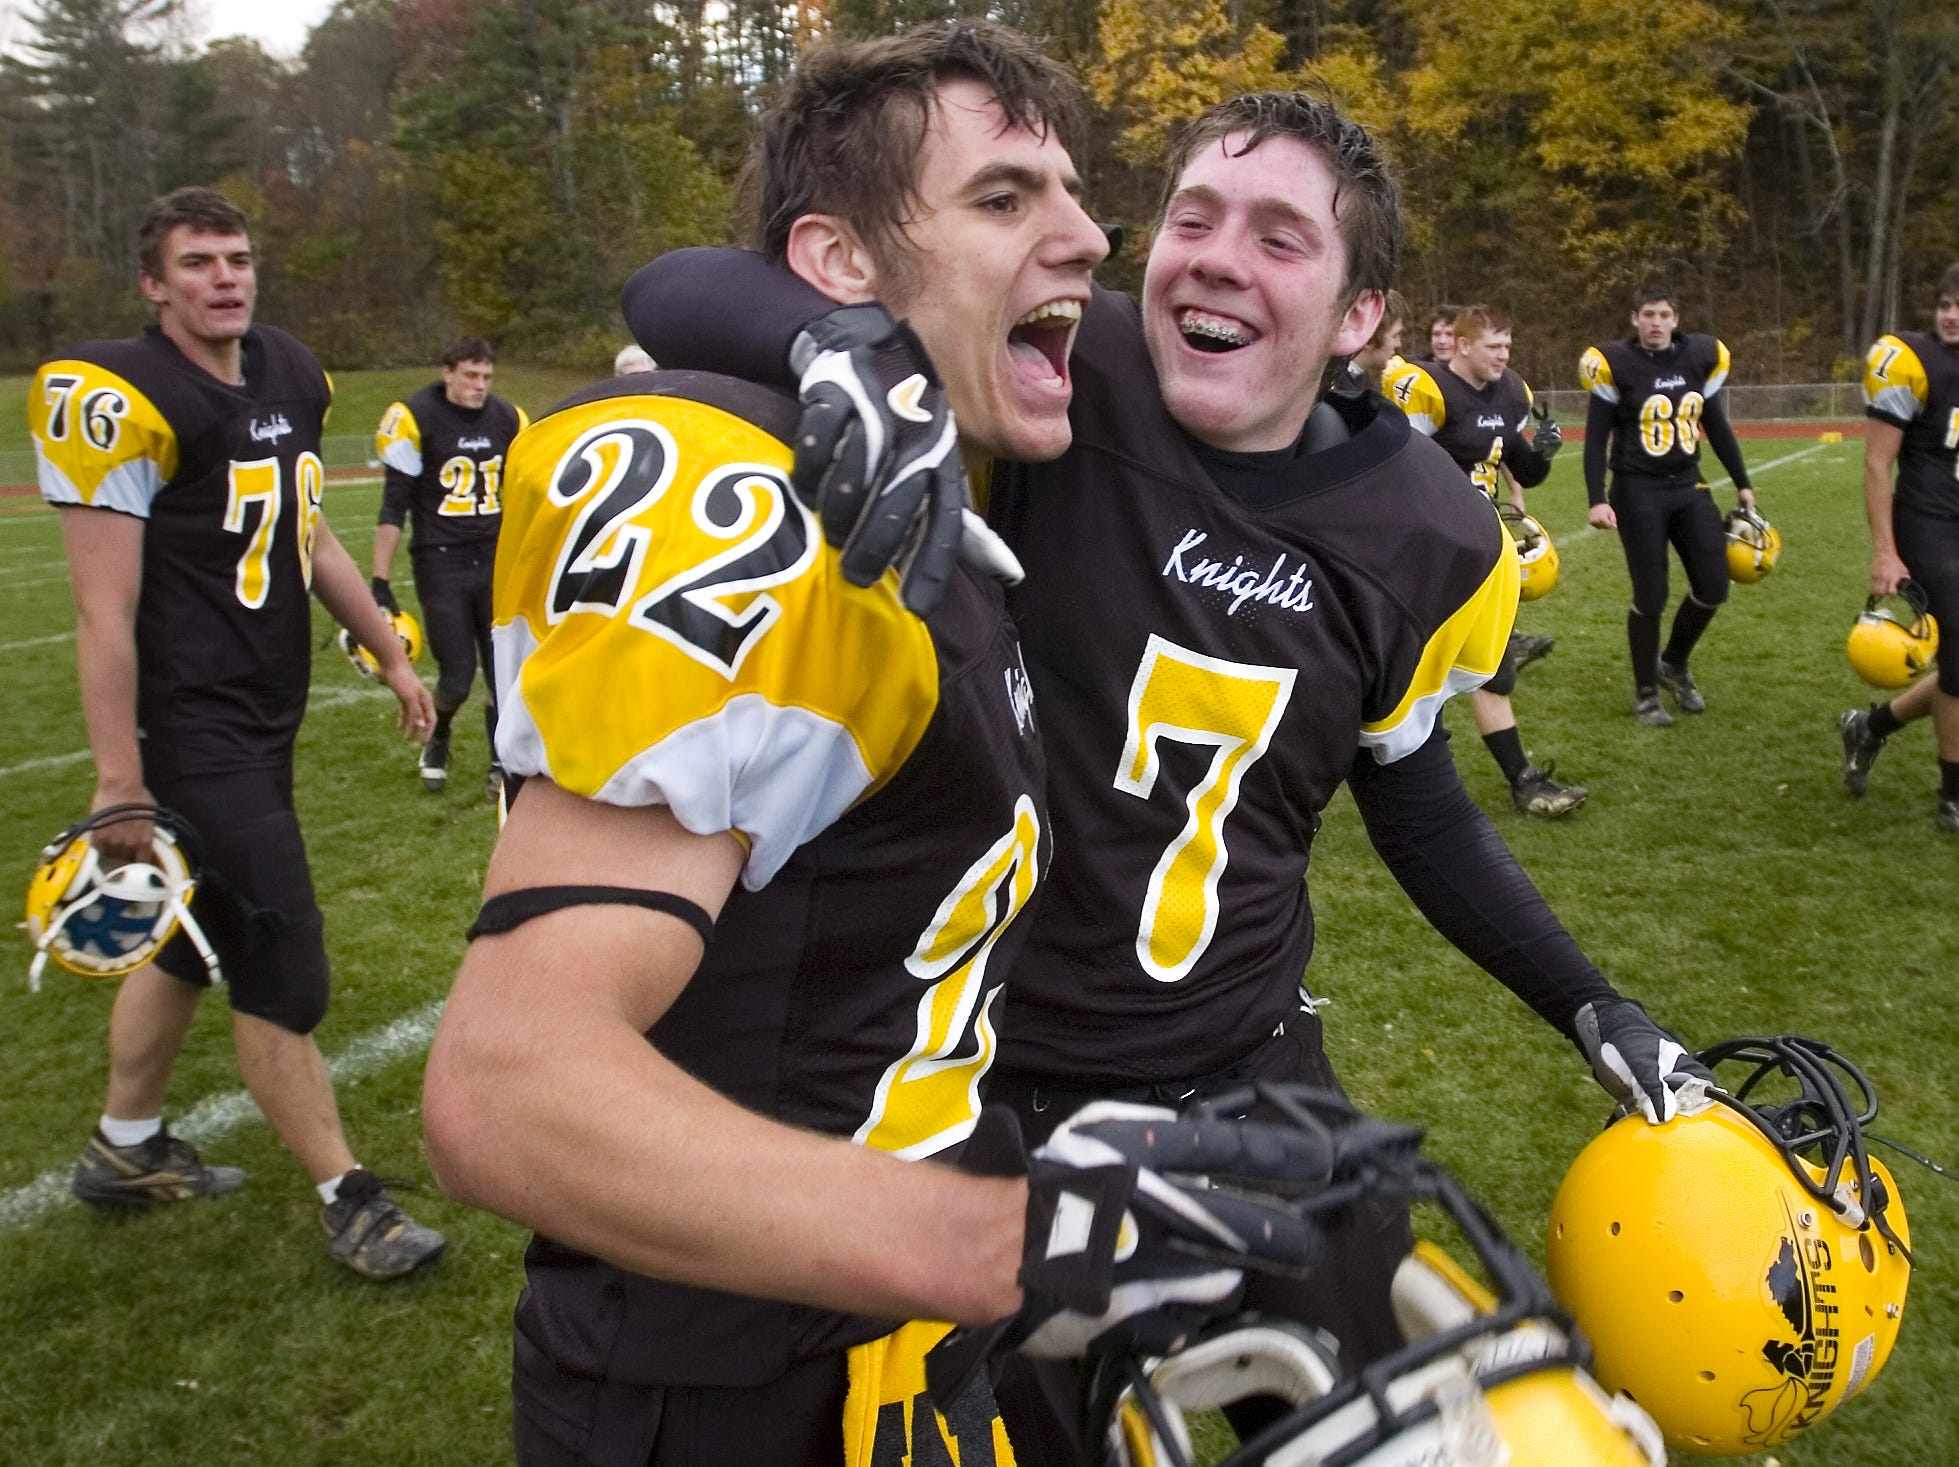 From 2006: Windsor's Cody Whitman, left and Tim Costello celebrate their win over Chenango Valley, 15-14 Saturday.